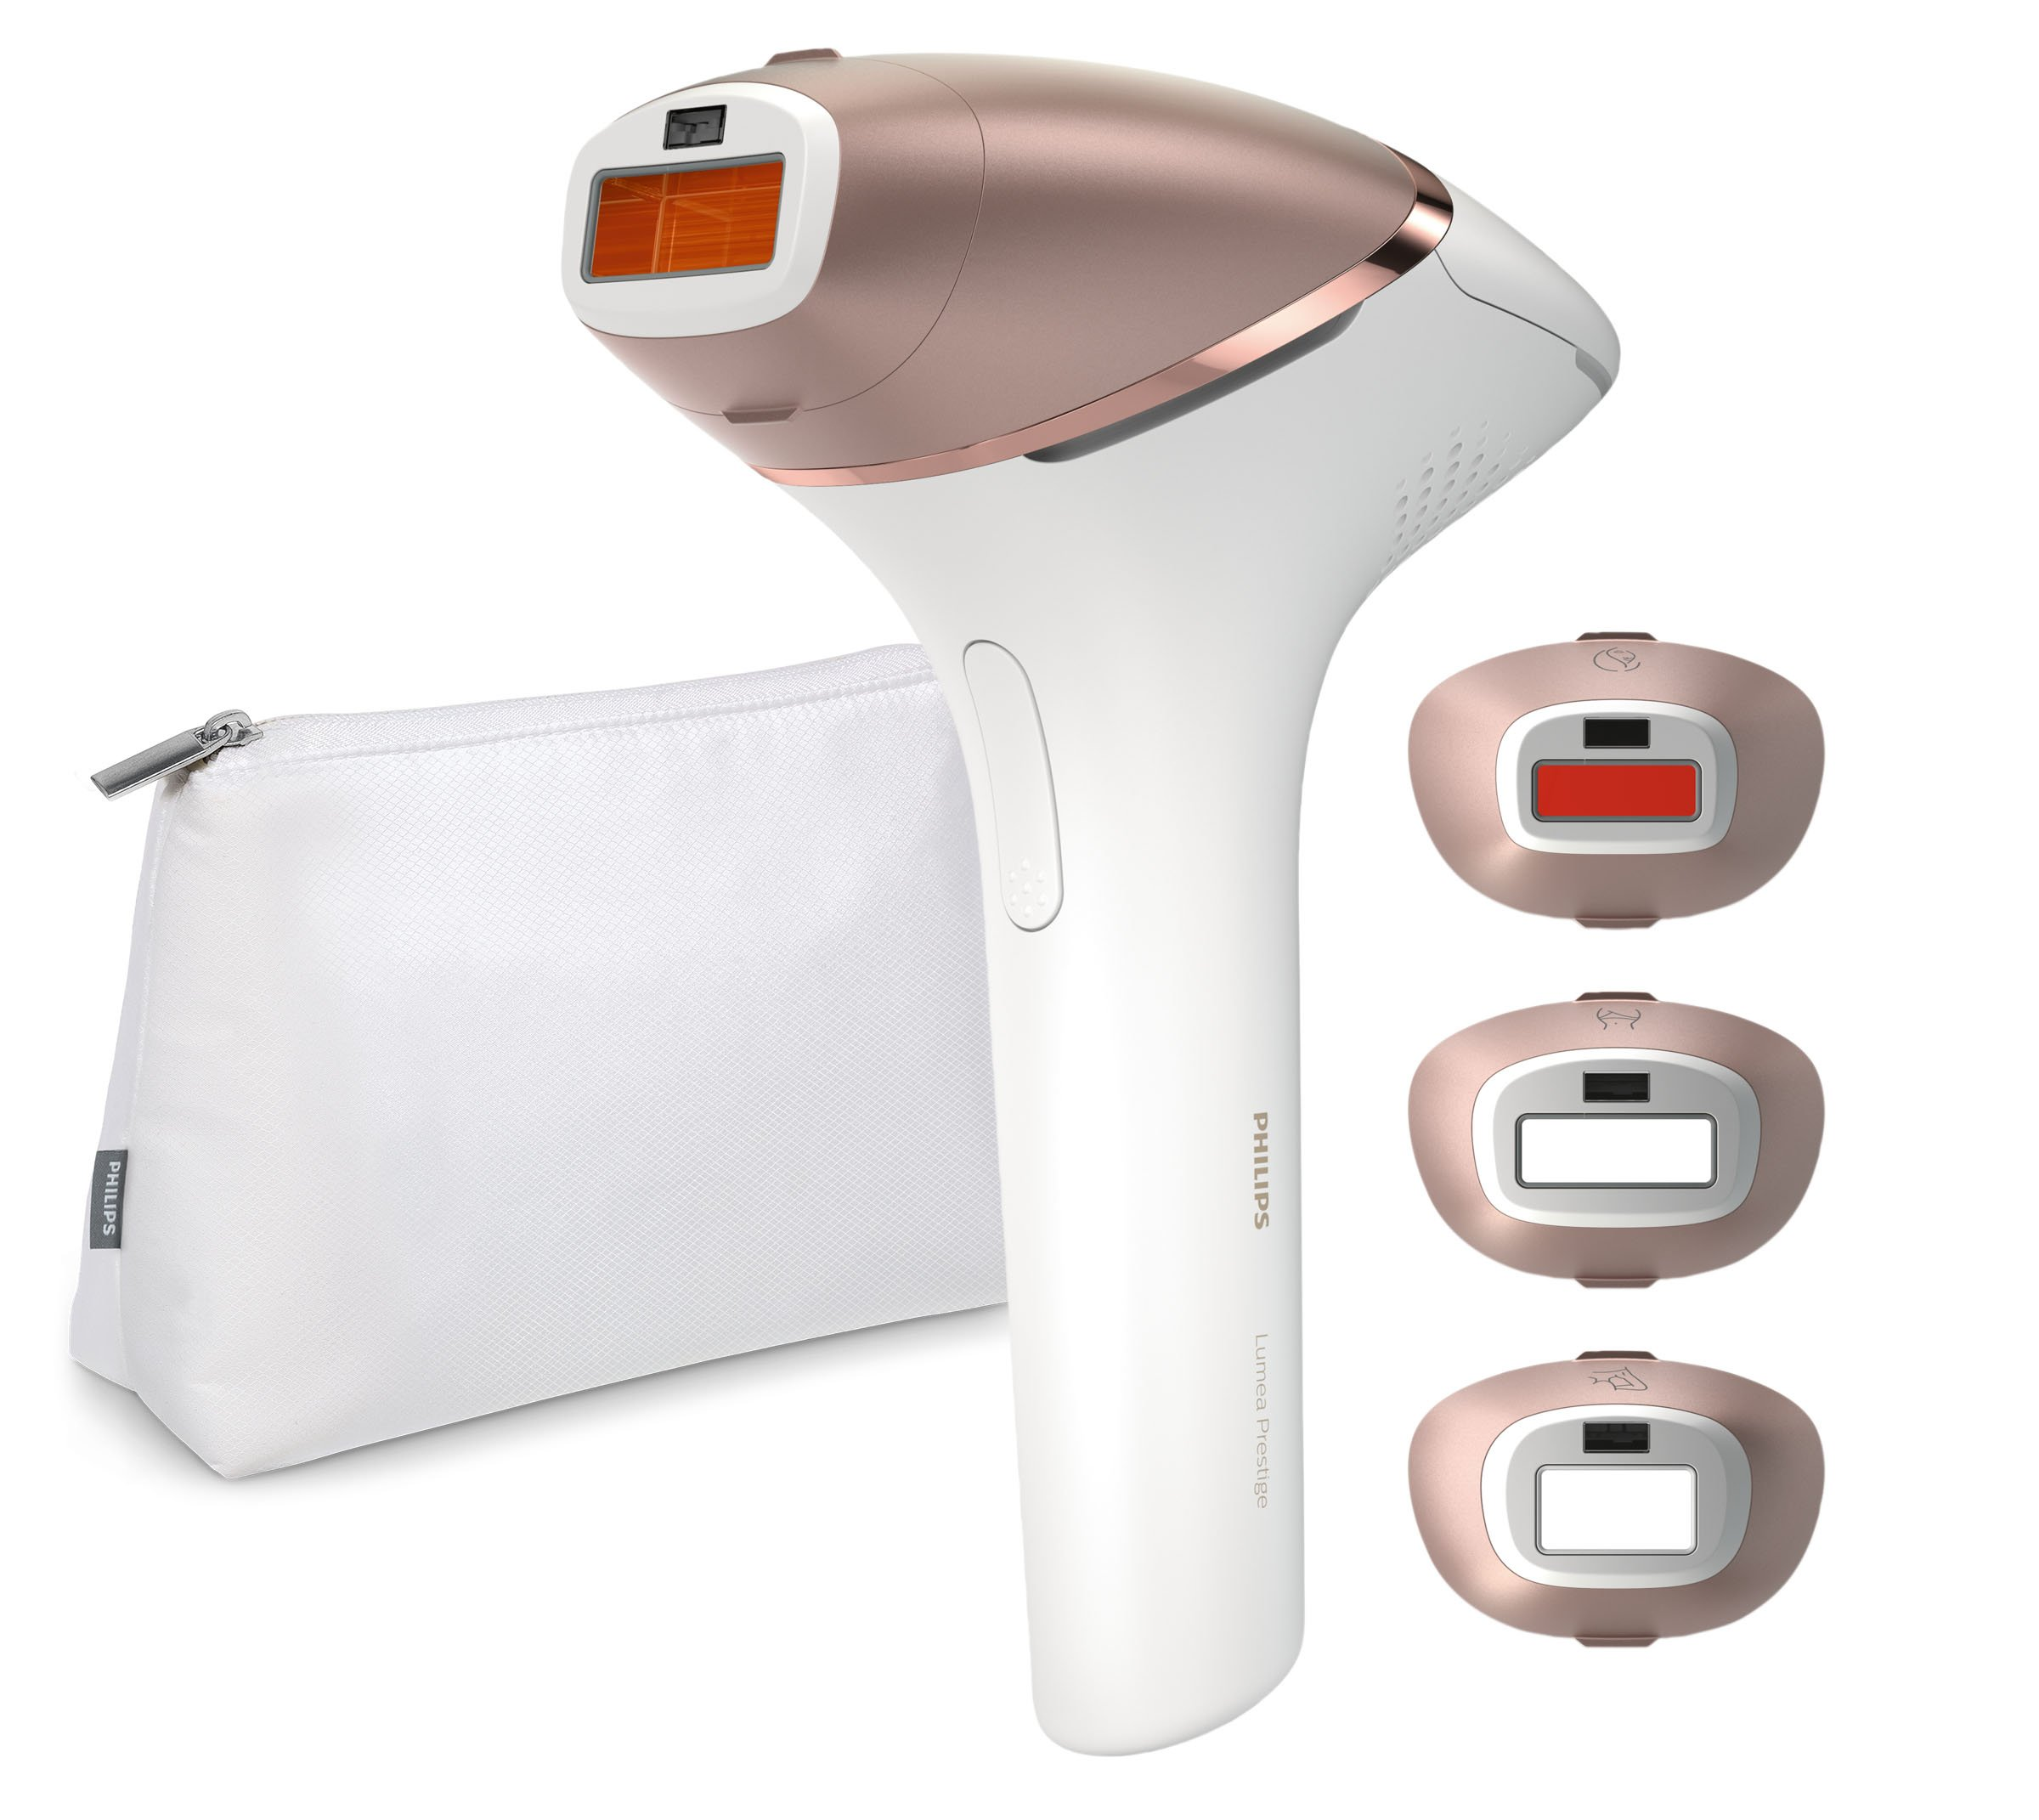 Philips Lumea New BRI956 Prestige IPL Hair Removal for Body, Face and Bikini - 2017 version